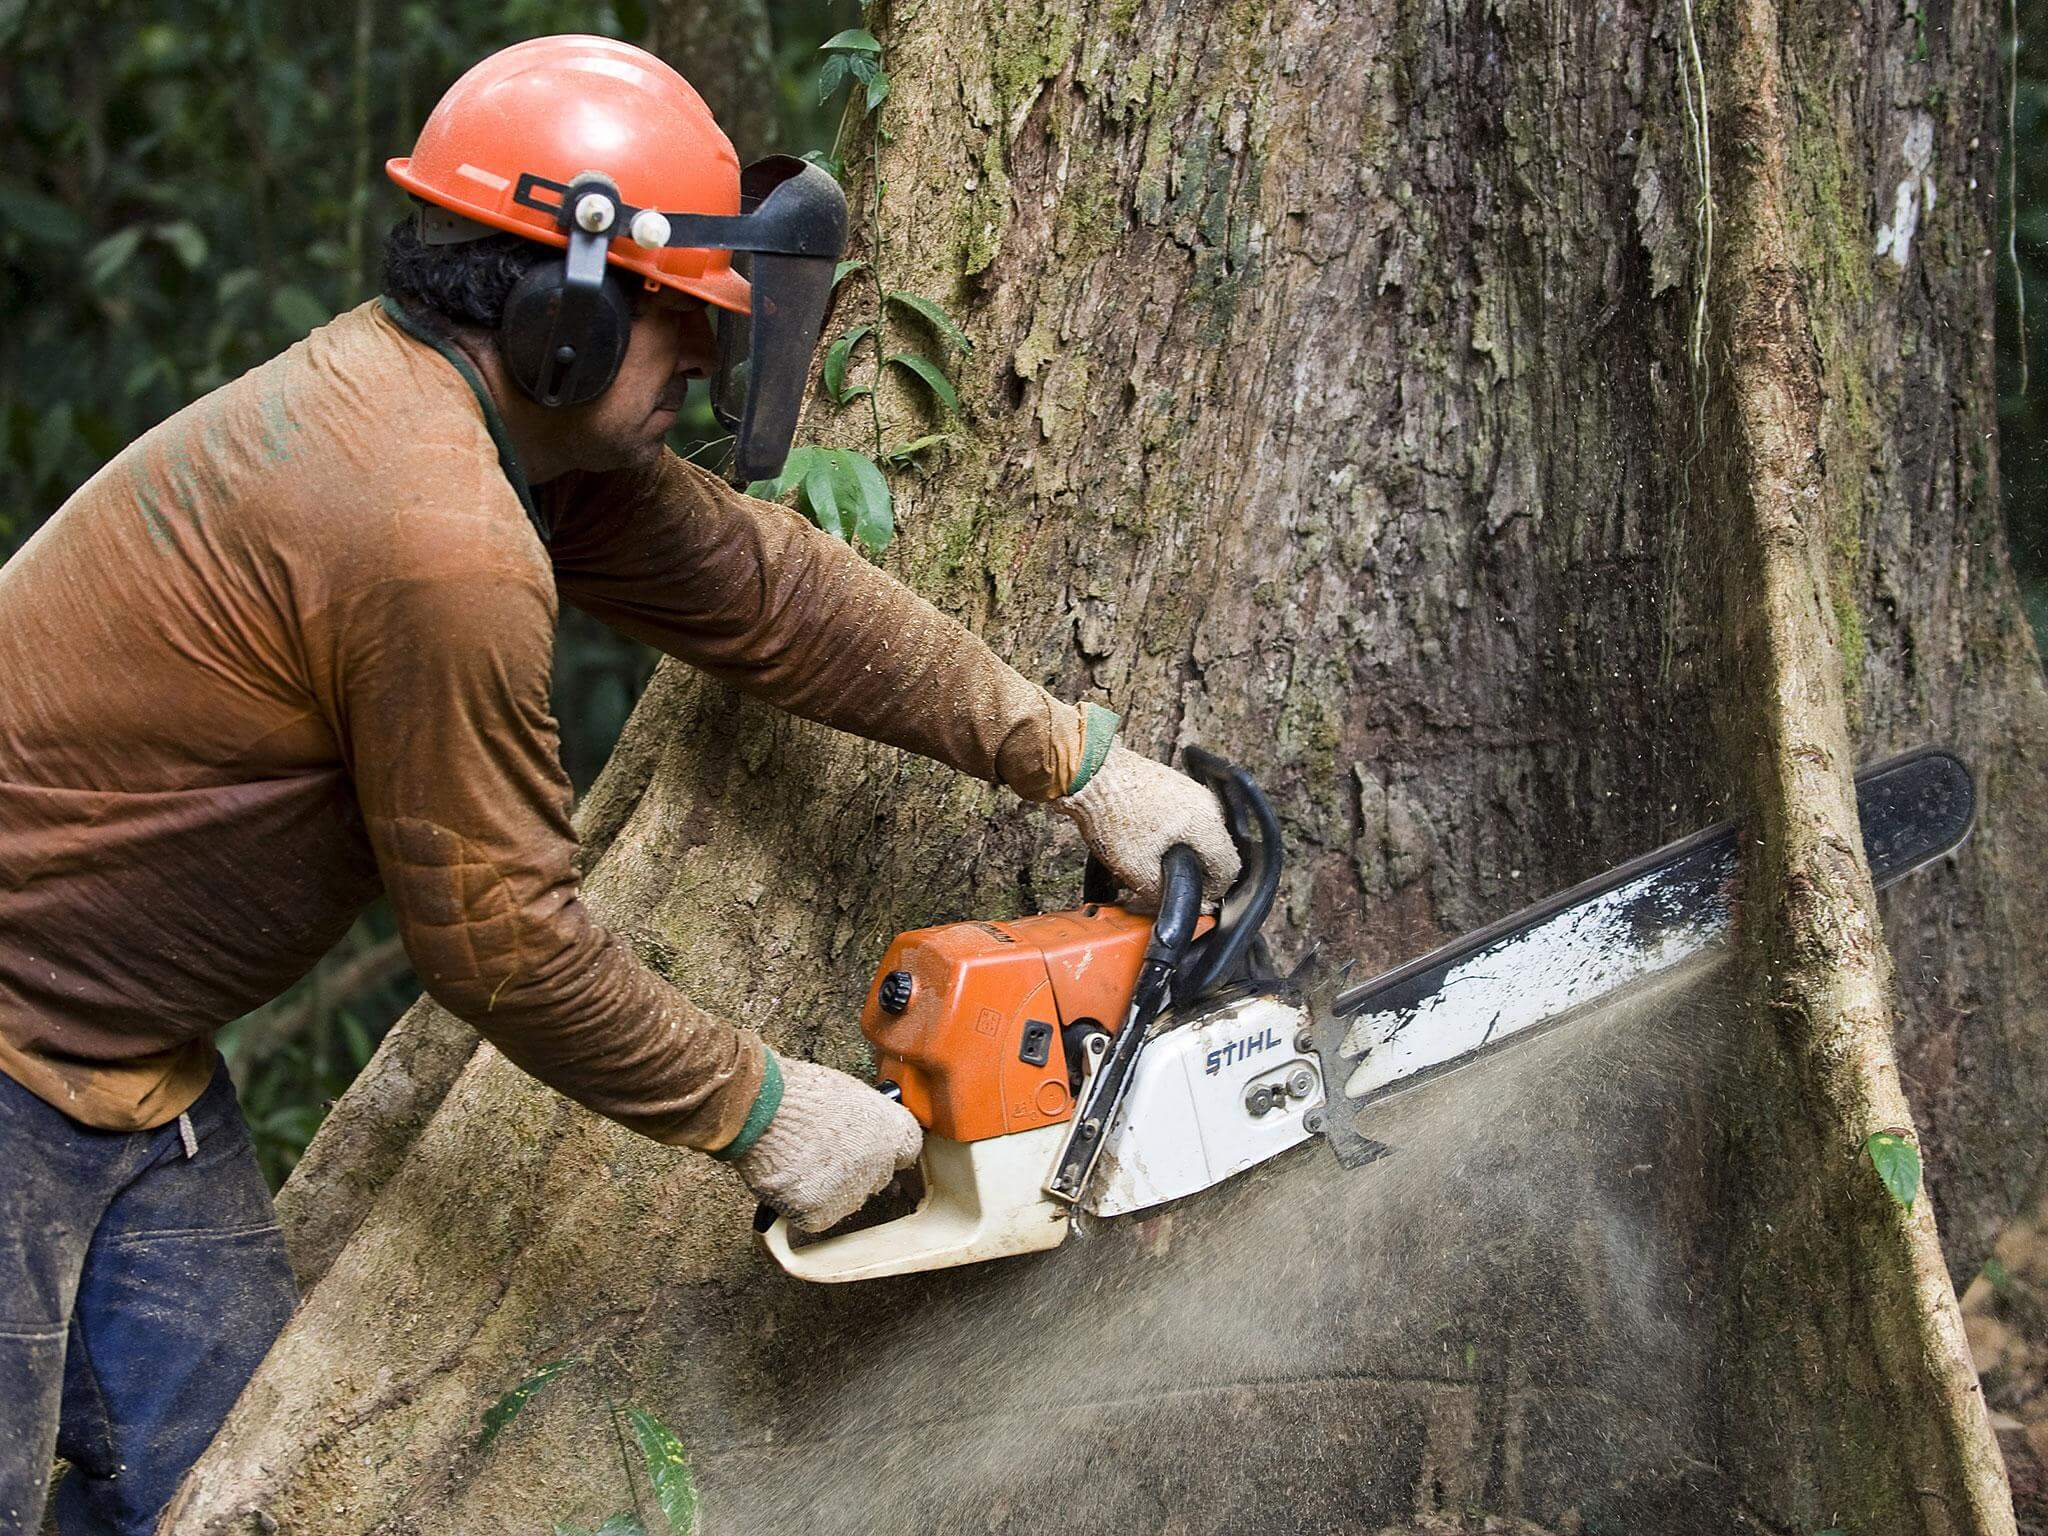 Bartow FL Tree Trimming and Stump Grinding Services Home Page Image-We Offer Tree Trimming Services, Tree Removal, Tree Pruning, Tree Cutting, Residential and Commercial Tree Trimming Services, Storm Damage, Emergency Tree Removal, Land Clearing, Tree Companies, Tree Care Service, Stump Grinding, and we're the Best Tree Trimming Company Near You Guaranteed!